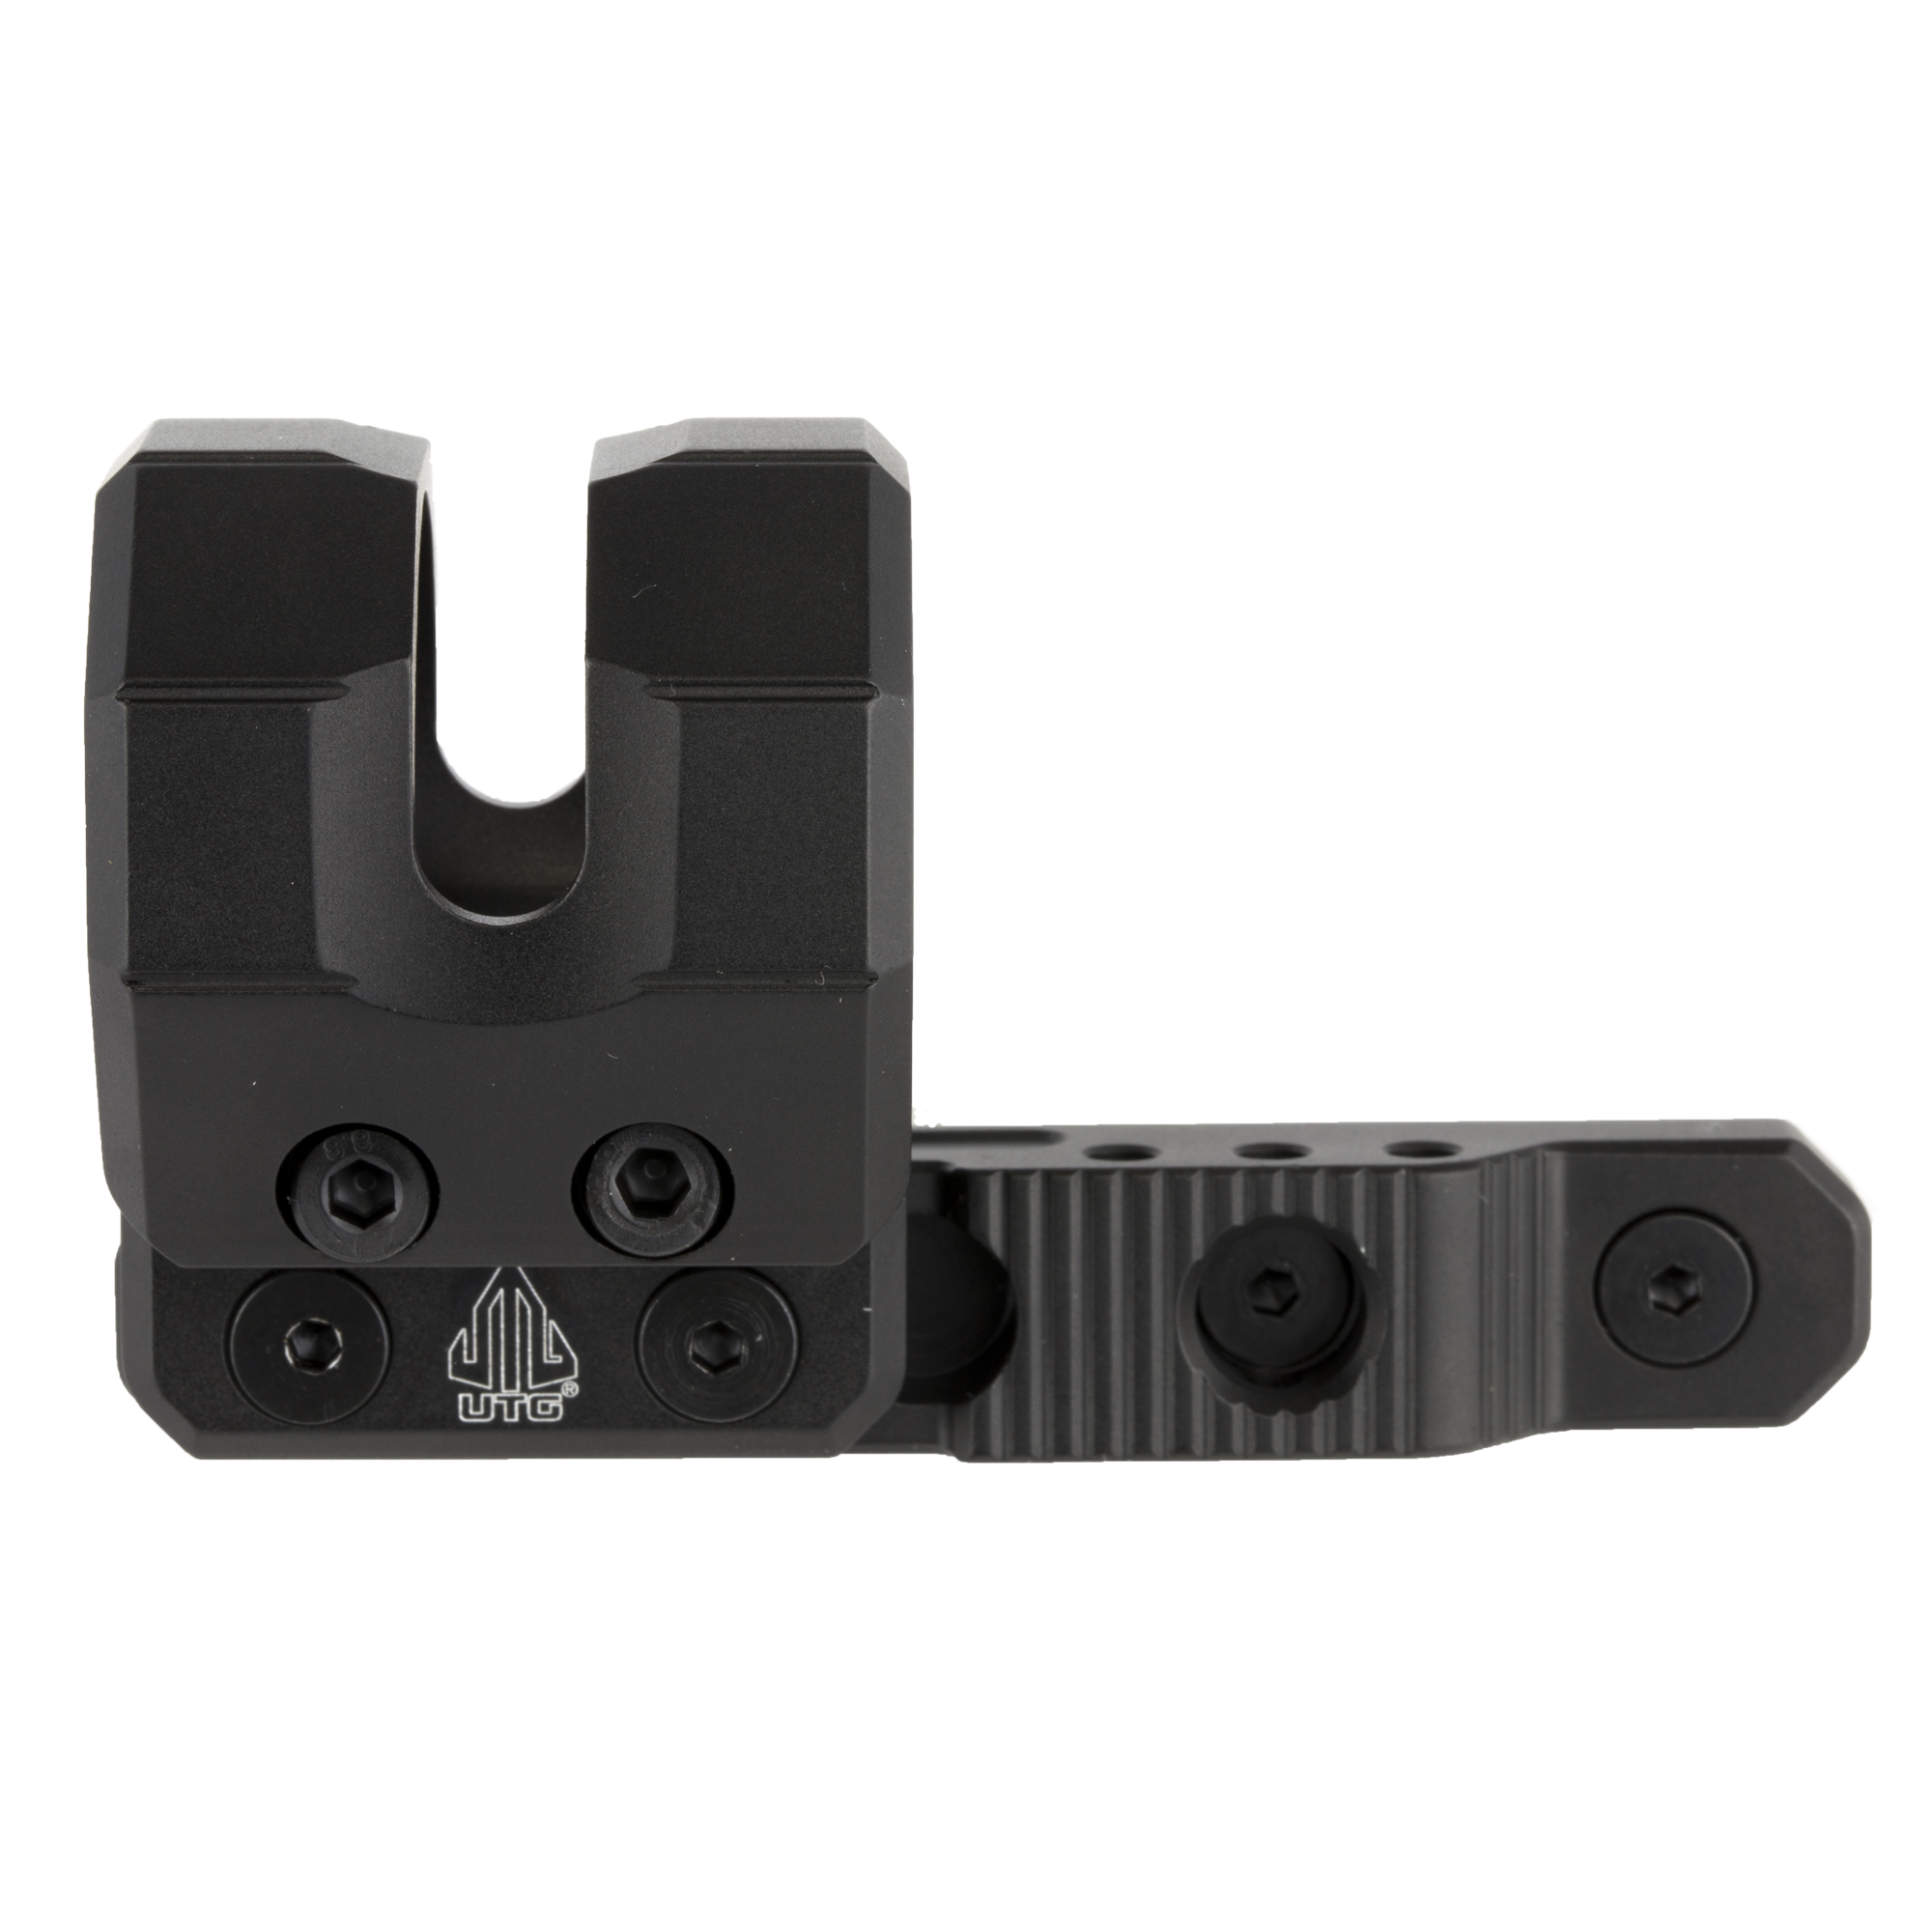 """This is a UTG Keymod offset flashlight ring mount. It is low profile"""" 3.47"""" in length"""" and comes with two inserts to fit 27mm"""" 25.4mm (1"""") or 20mm flashlight tube diameters. Includes keymod steel locking nuts"""" screws and Allen wrench for user friendly installation."""